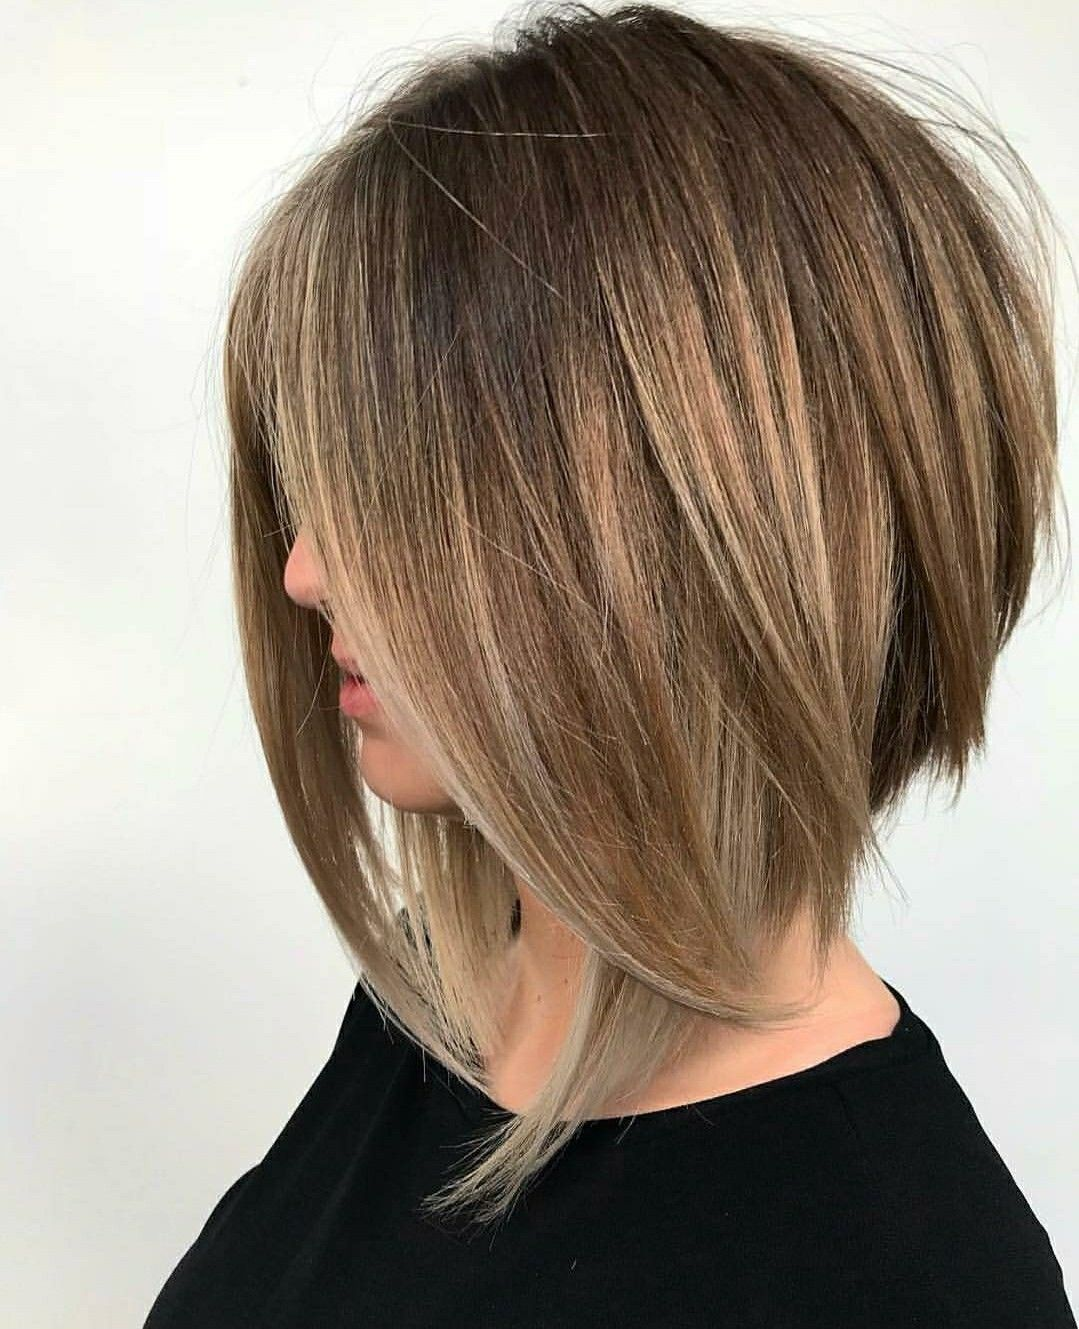 Pin By Lydie Jacquelin On Cabelos Hair Styles Thick Hair Styles Angled Bob Hairstyles